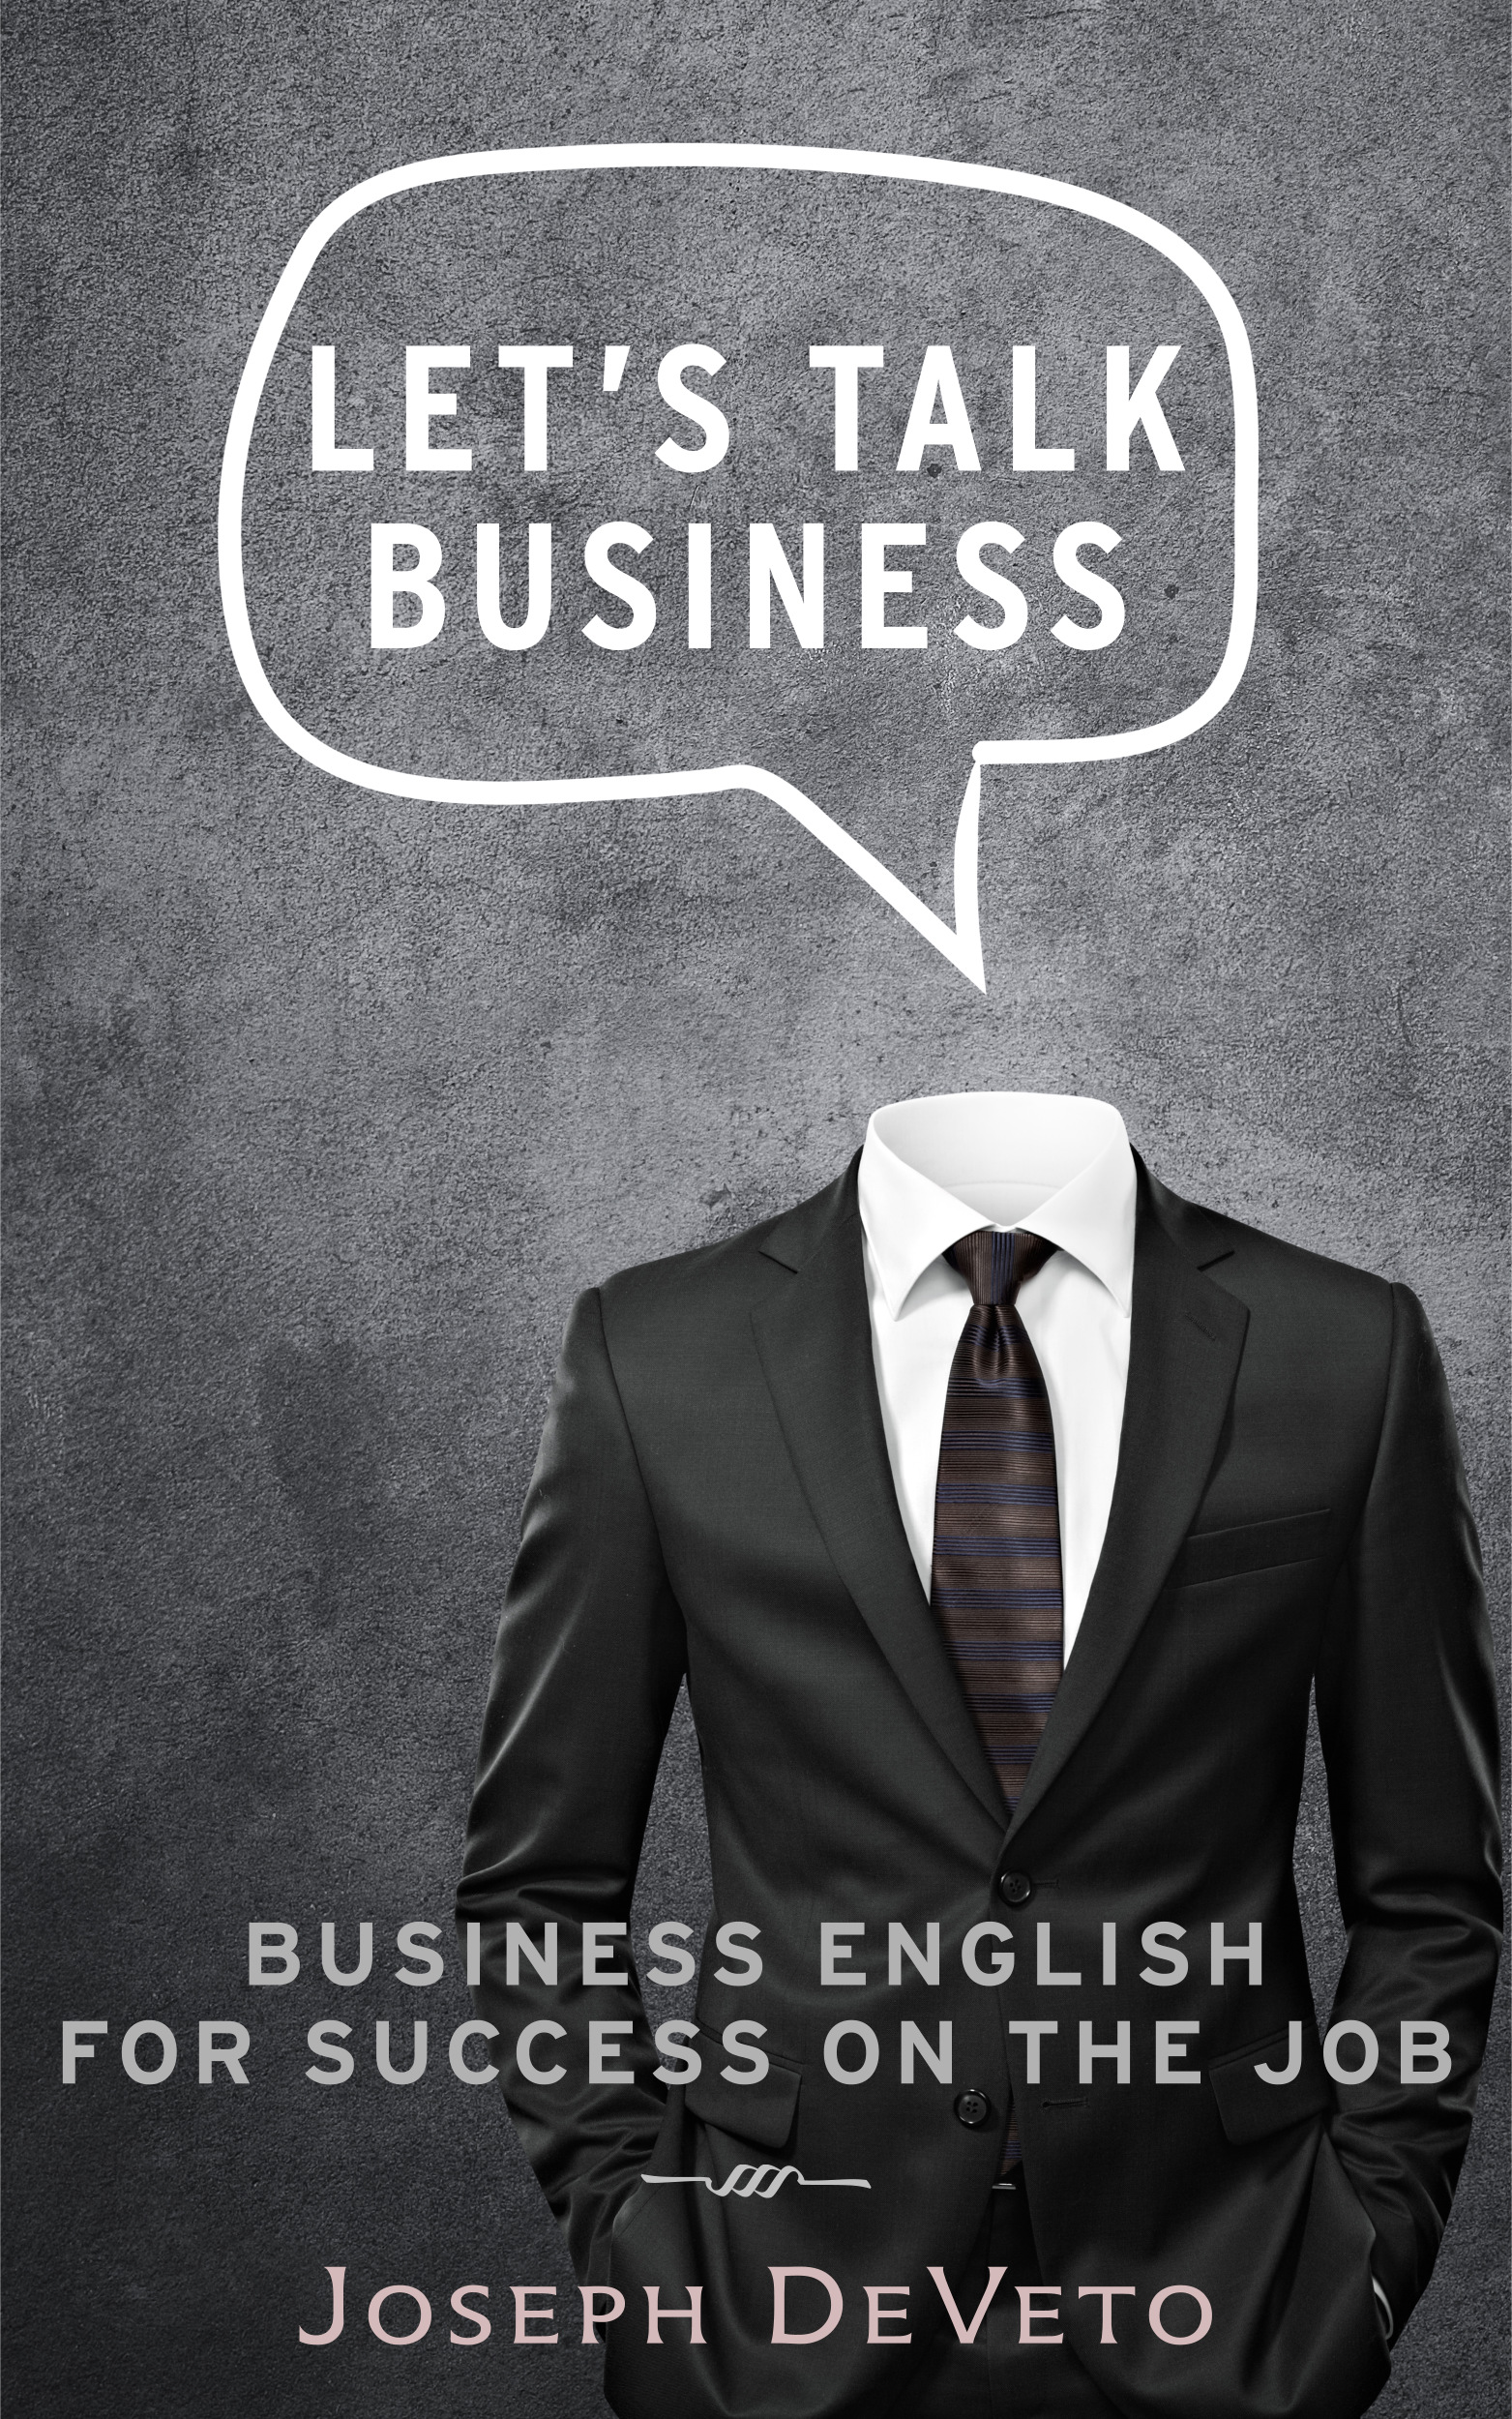 Business English Audio Book